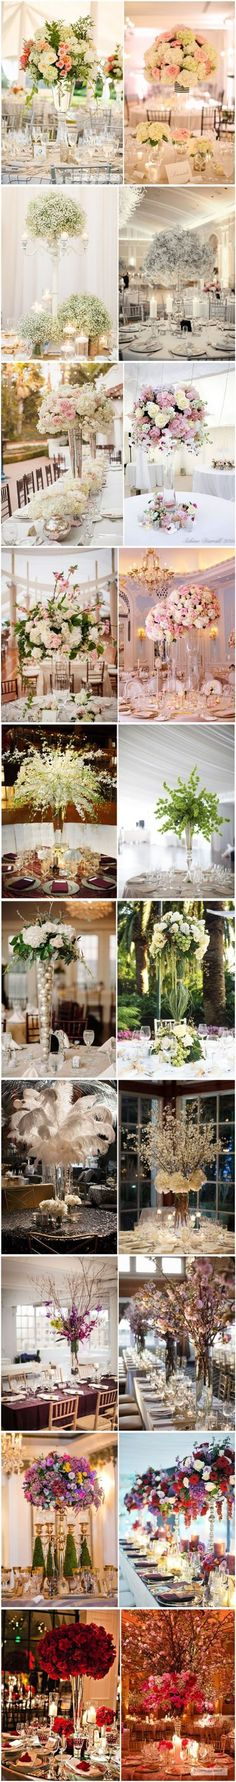 TOP 20 Tall wedding centerpiece ideas